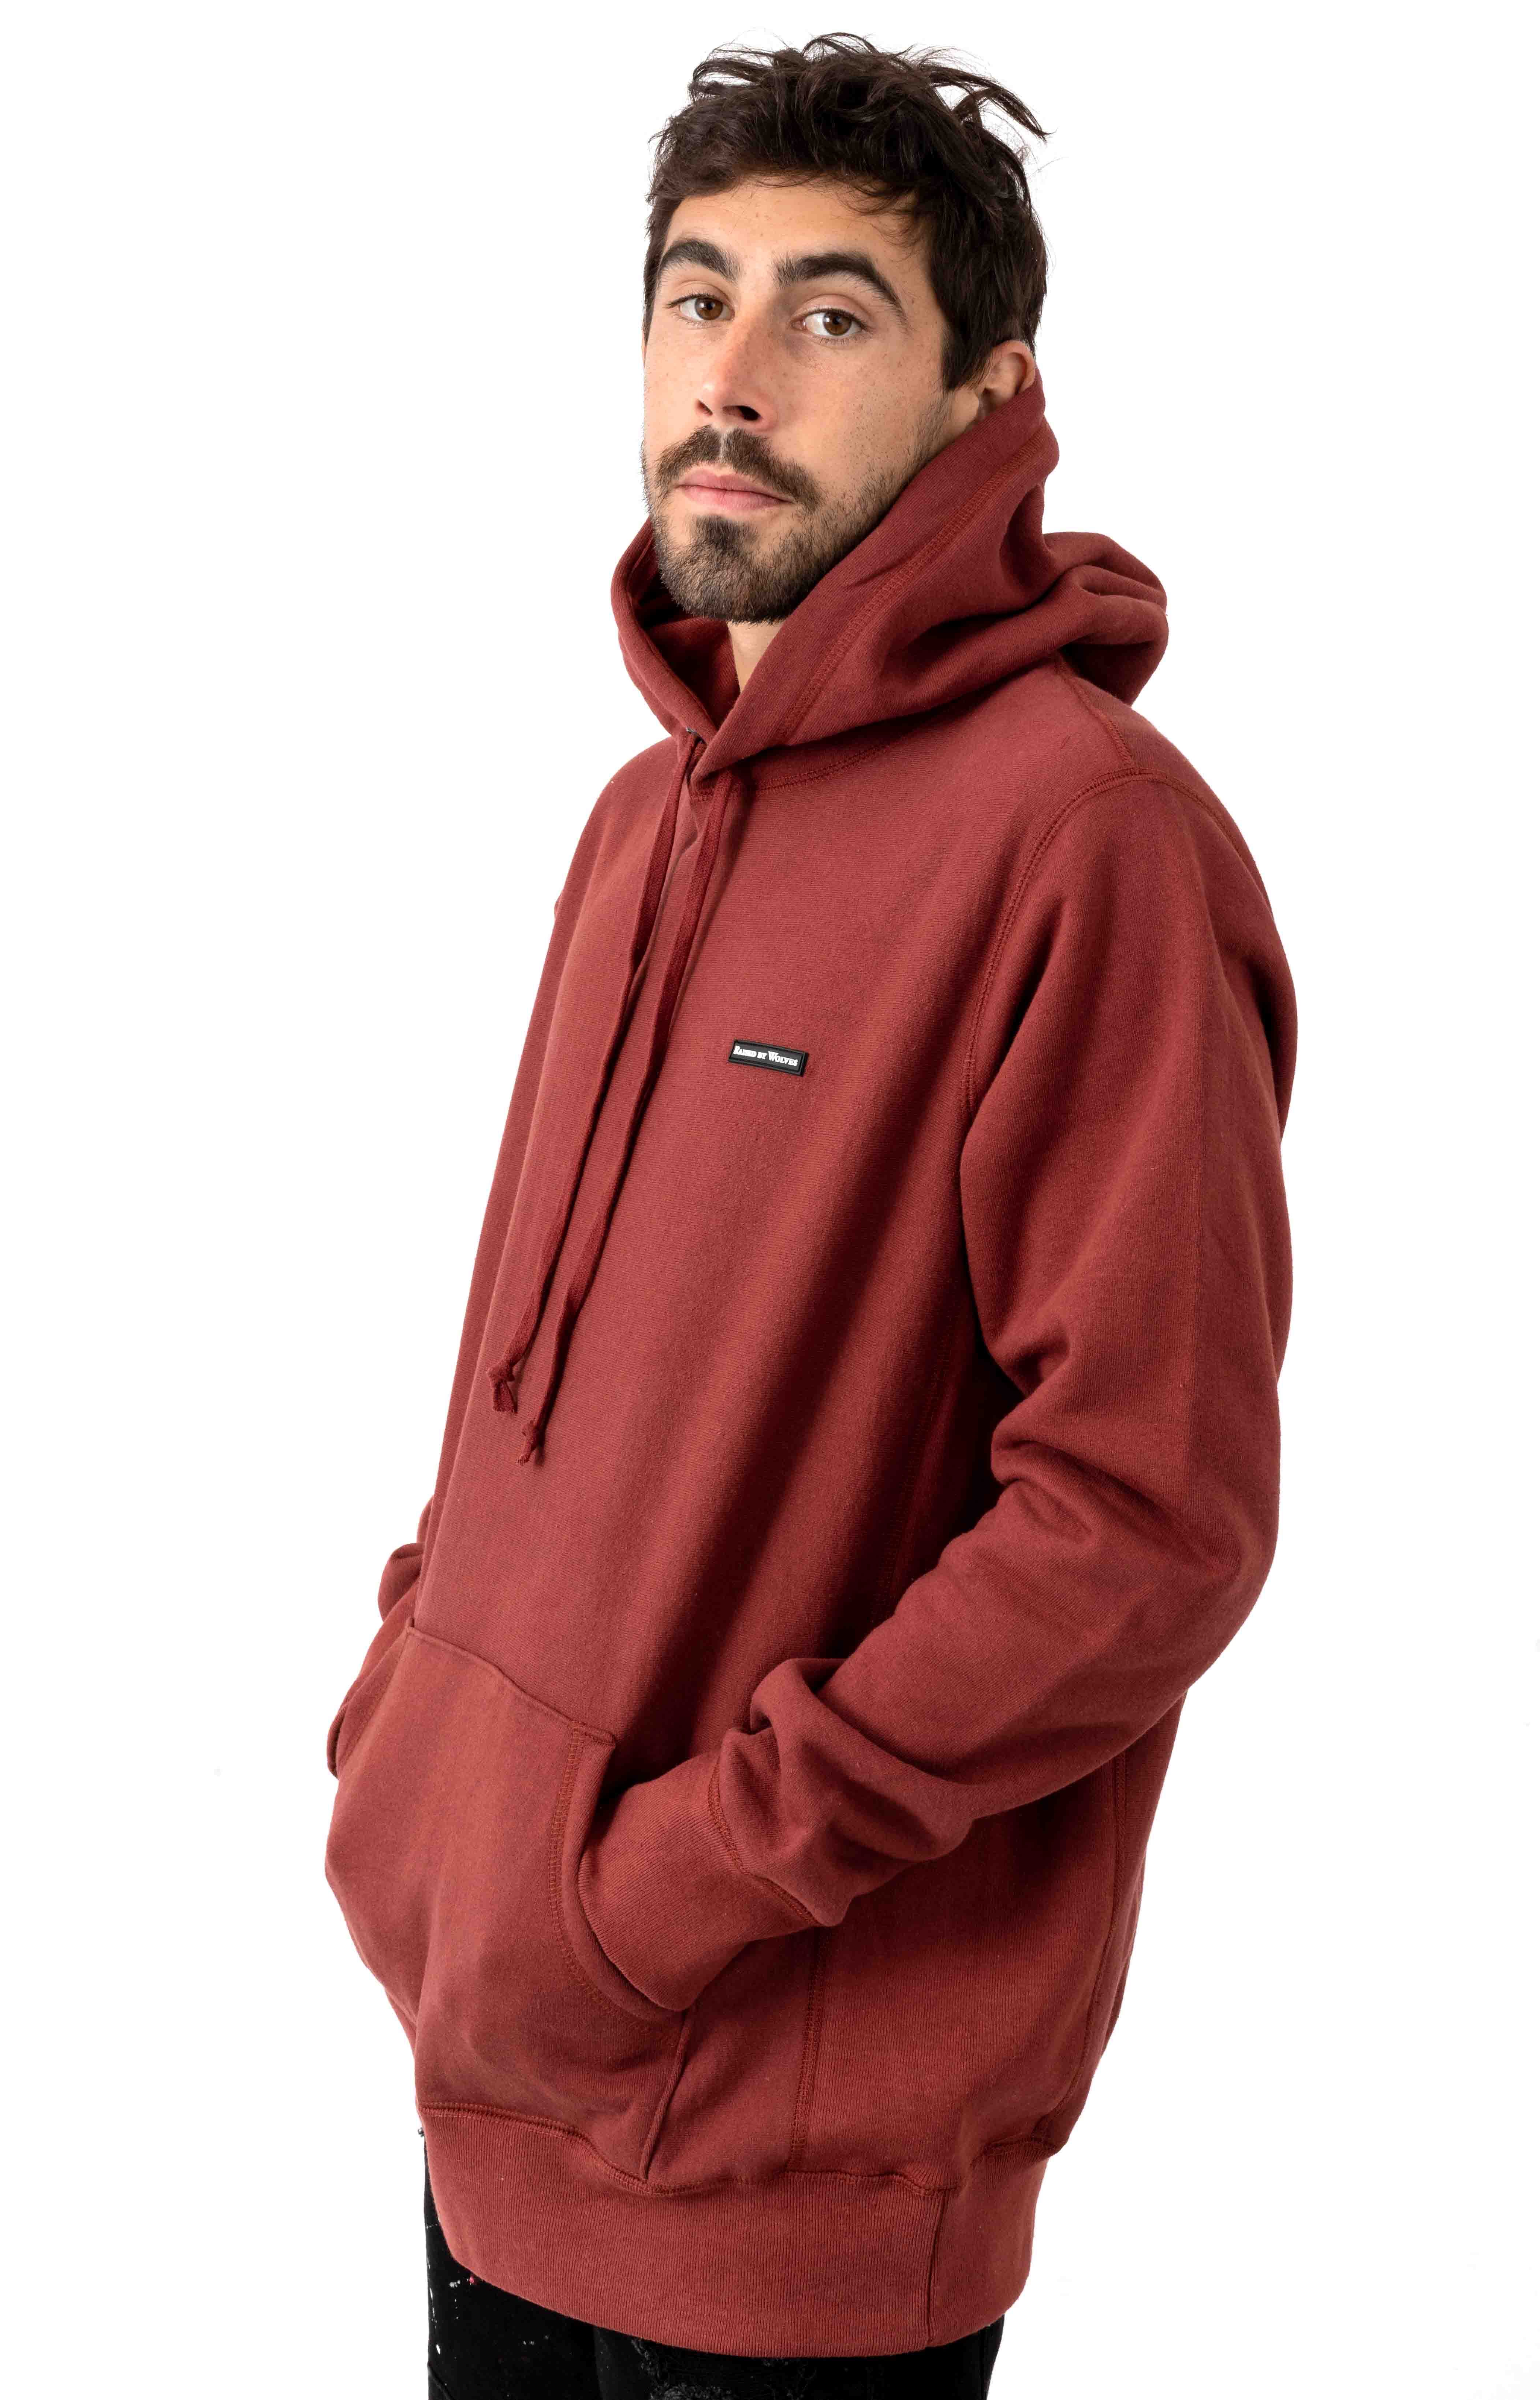 PVC Logo Pullover Hoodie - Congo Red 2